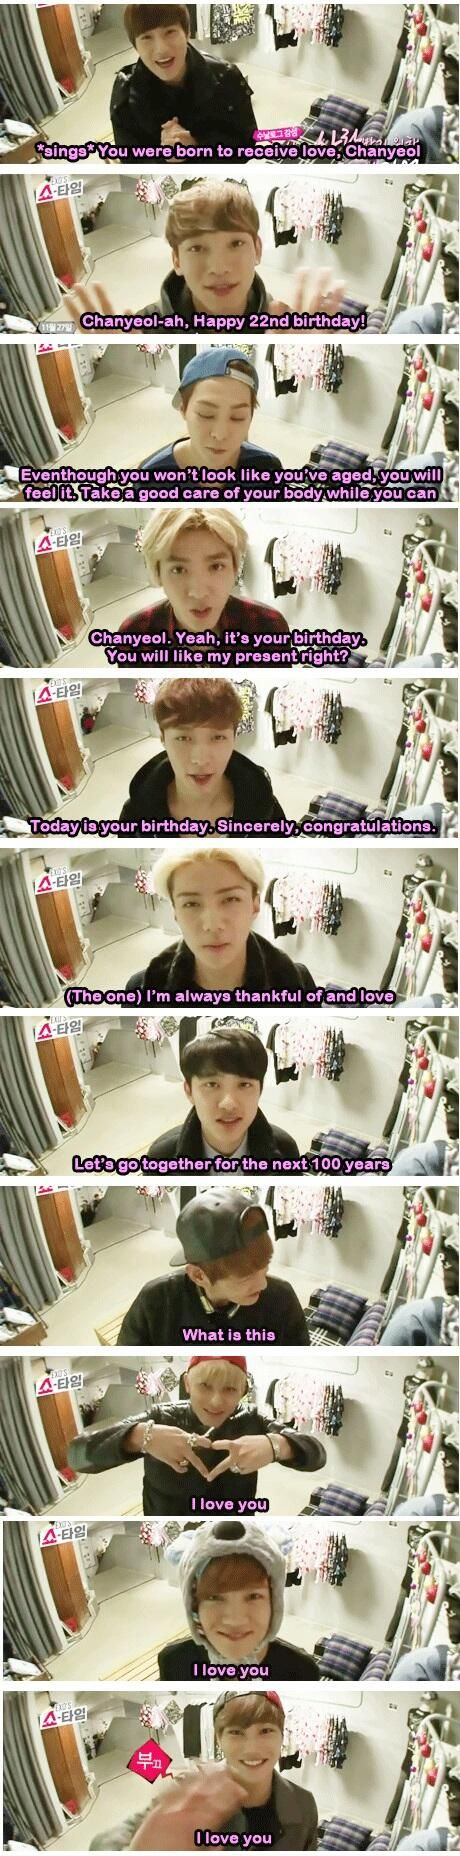 This is so sweet. ^_^  Lol, except for BAEK'S!  BAEKHYUN. Is that really any way to wish your fellow member a happy birthday? xP